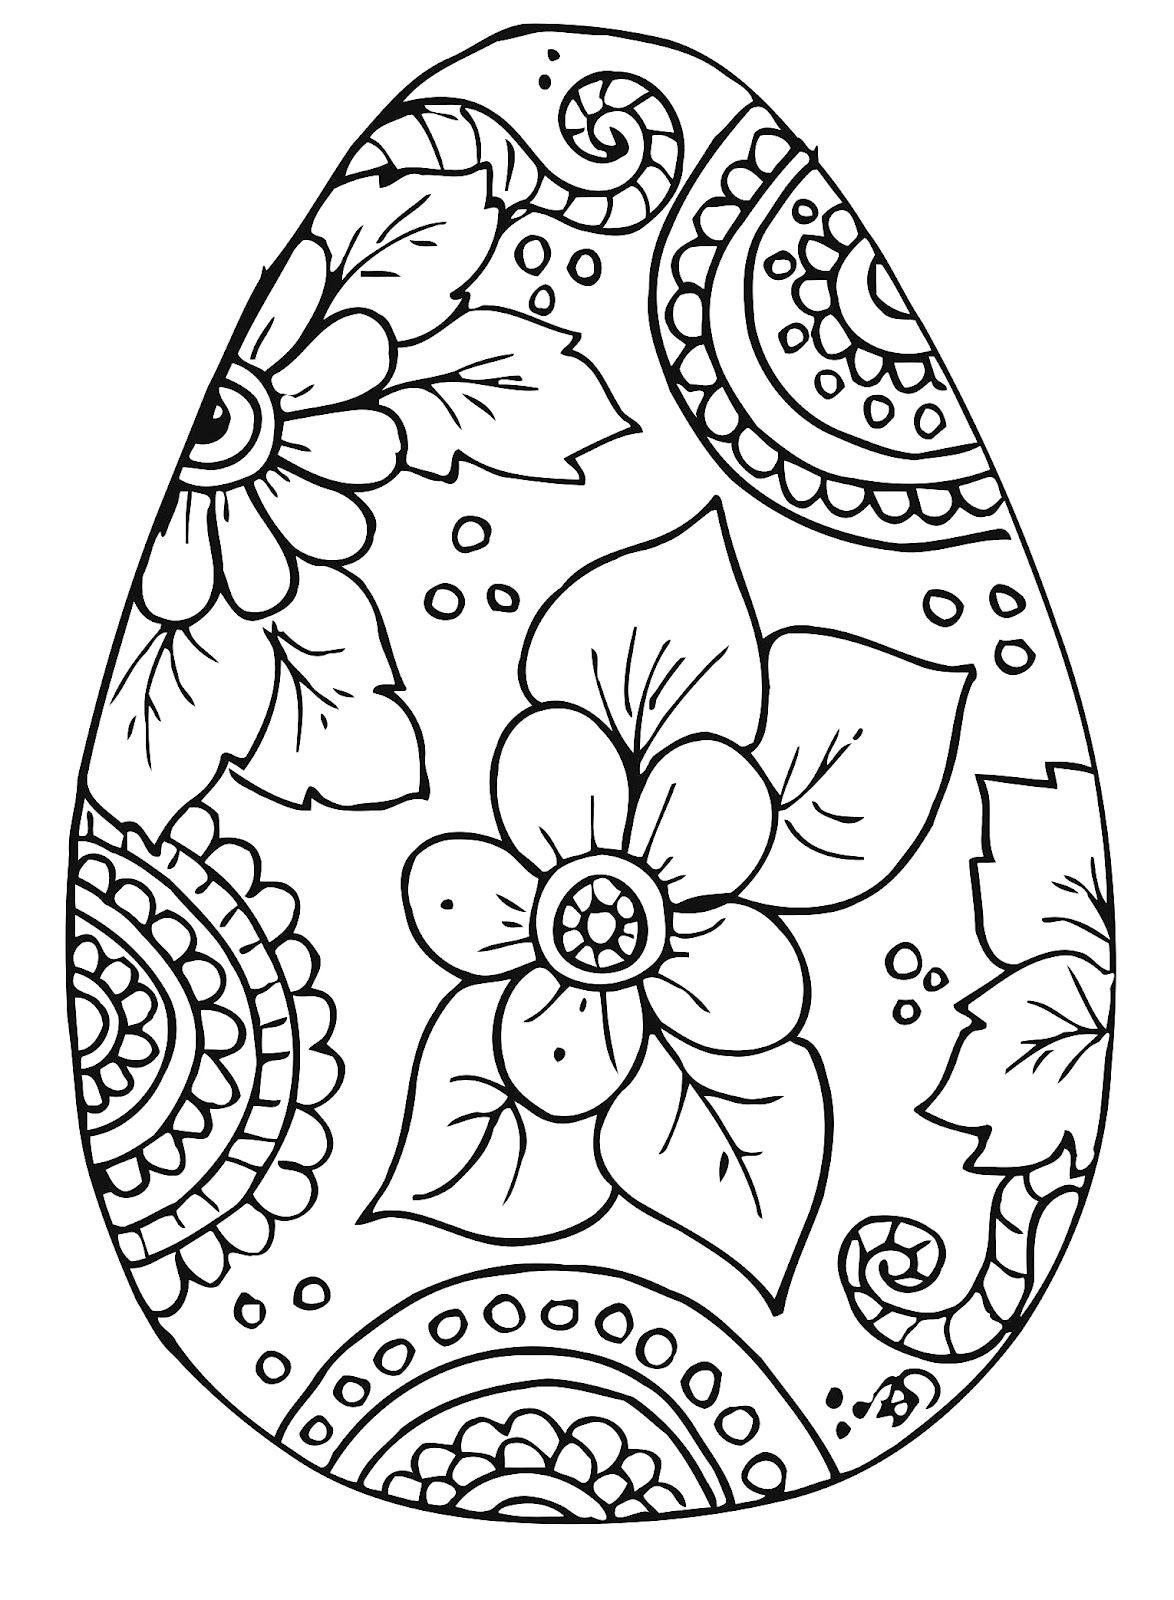 designs free coloring page easter kleurplaat pasen 3 egg painting patterns to use for painting rocks - Free Coloring Pages Of Easter